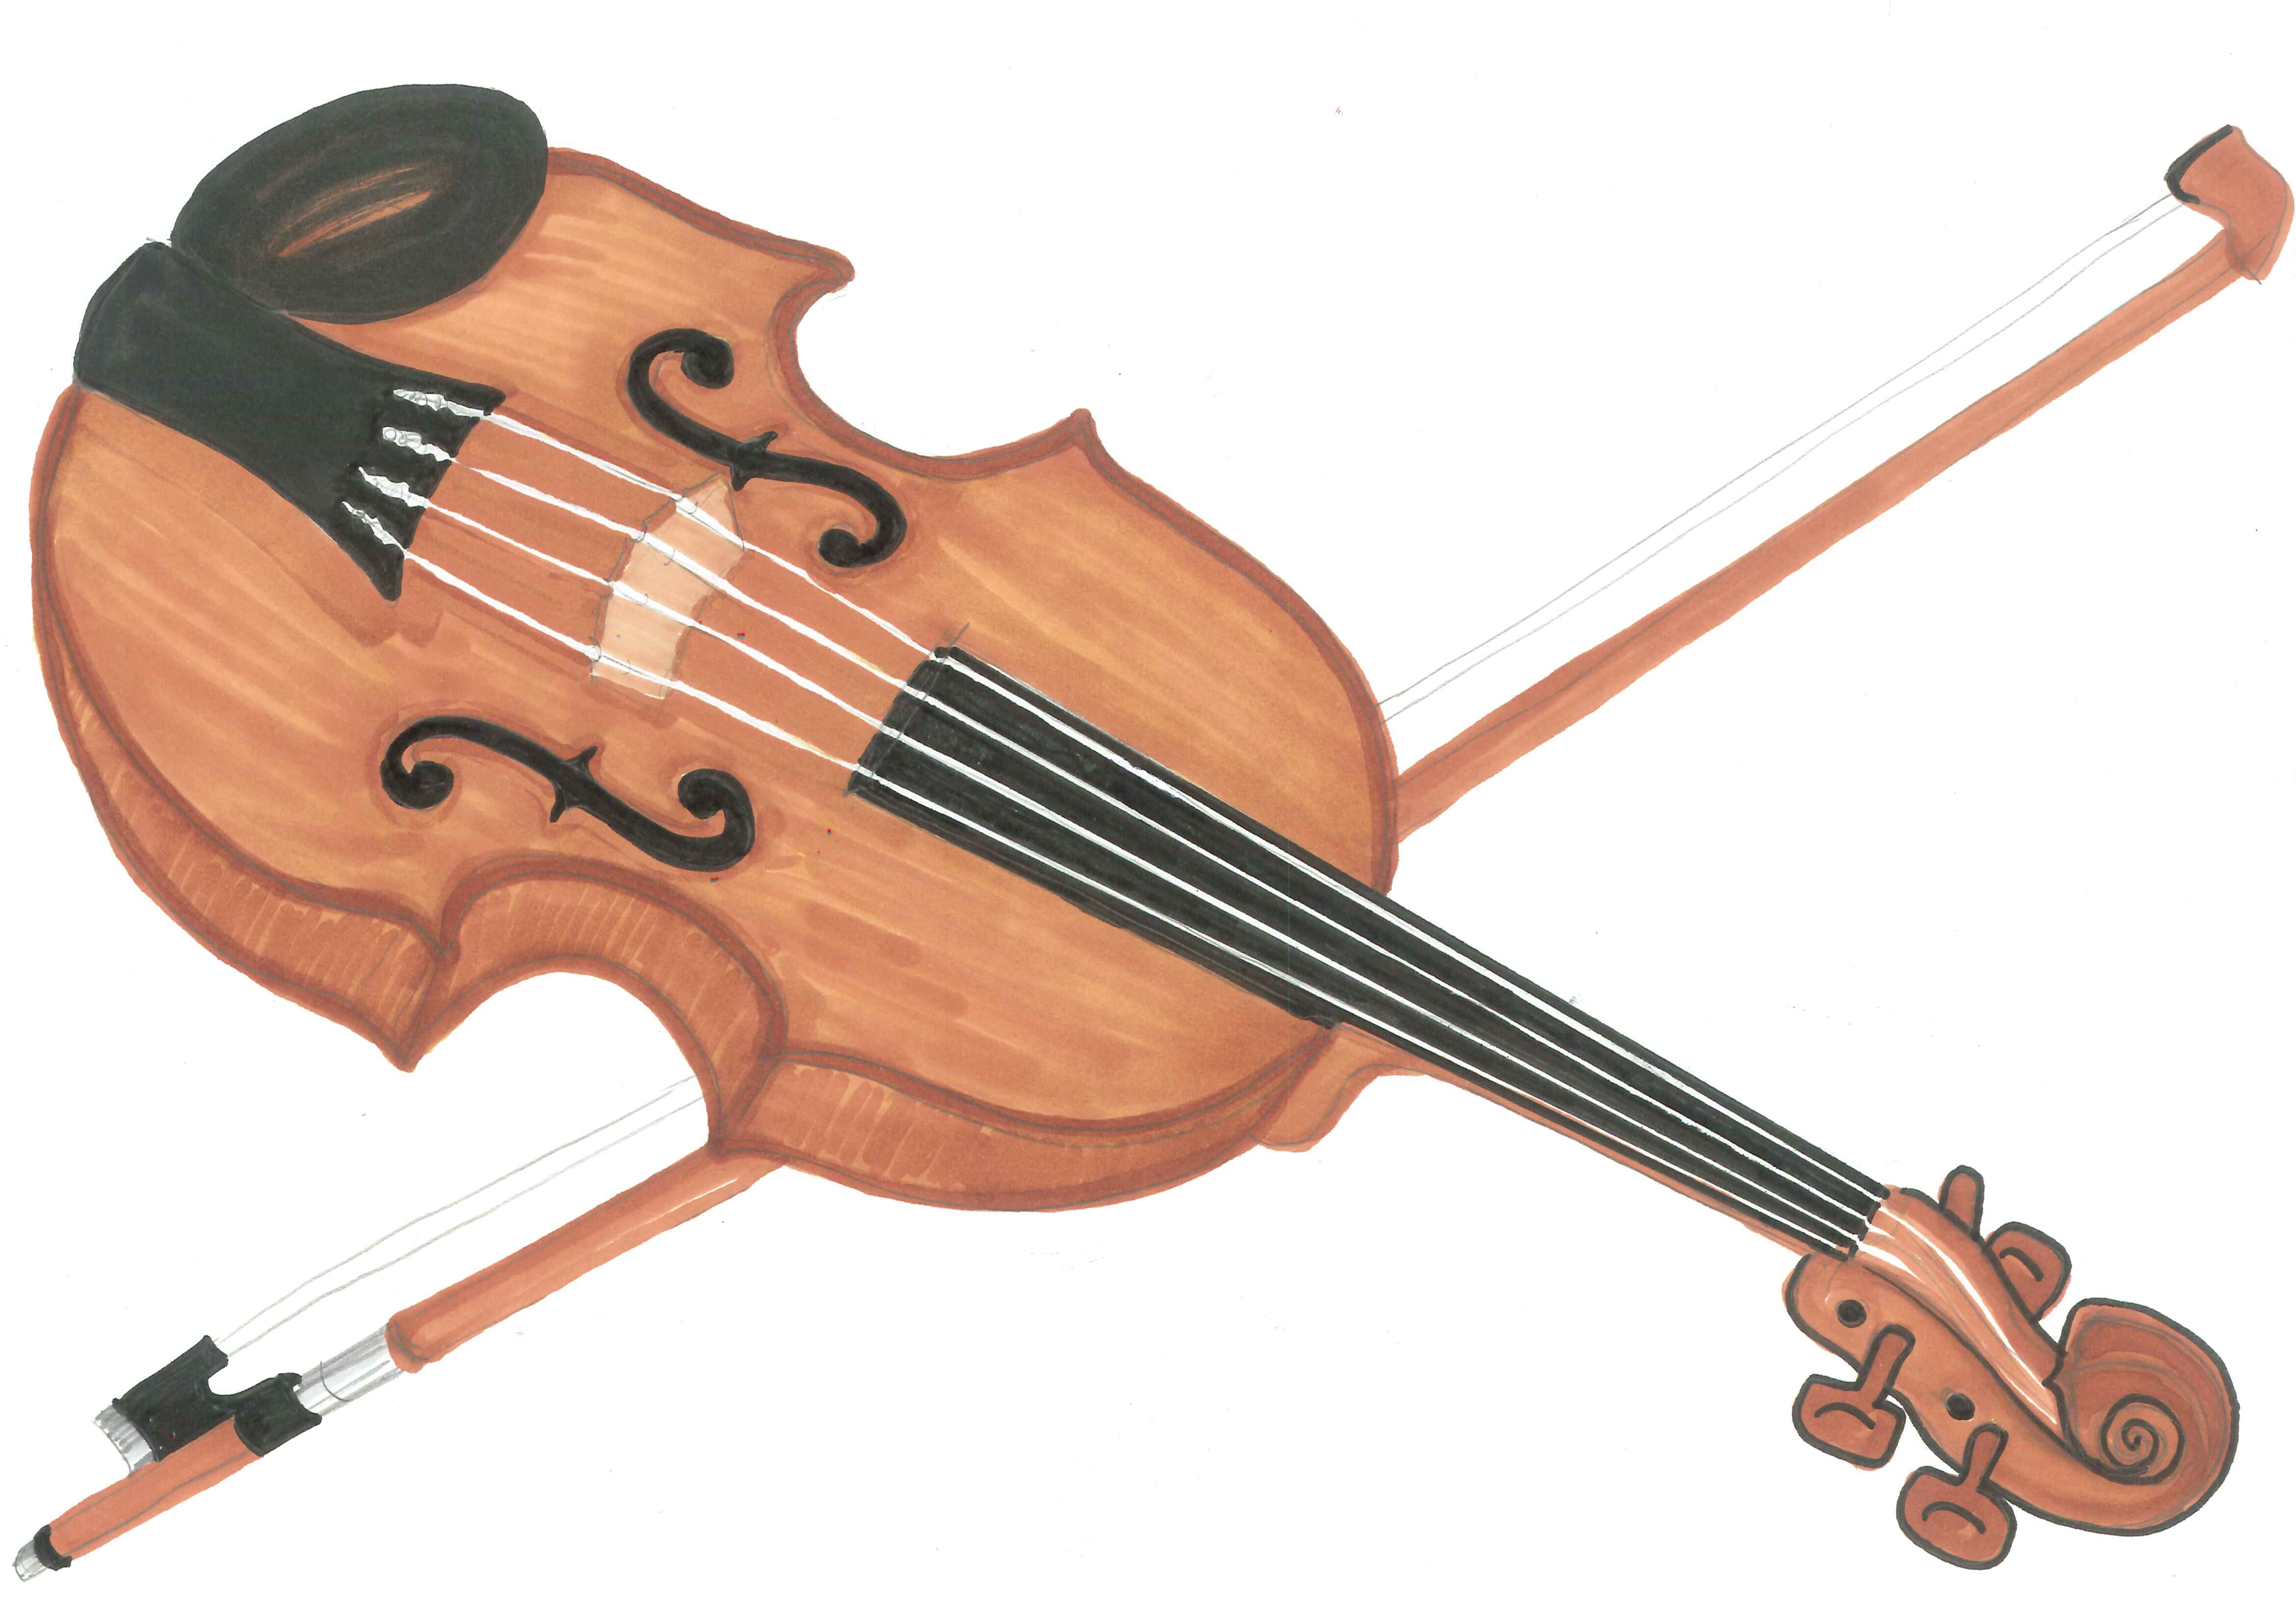 Instruments clipart string instrument. Music of musical typegoodies